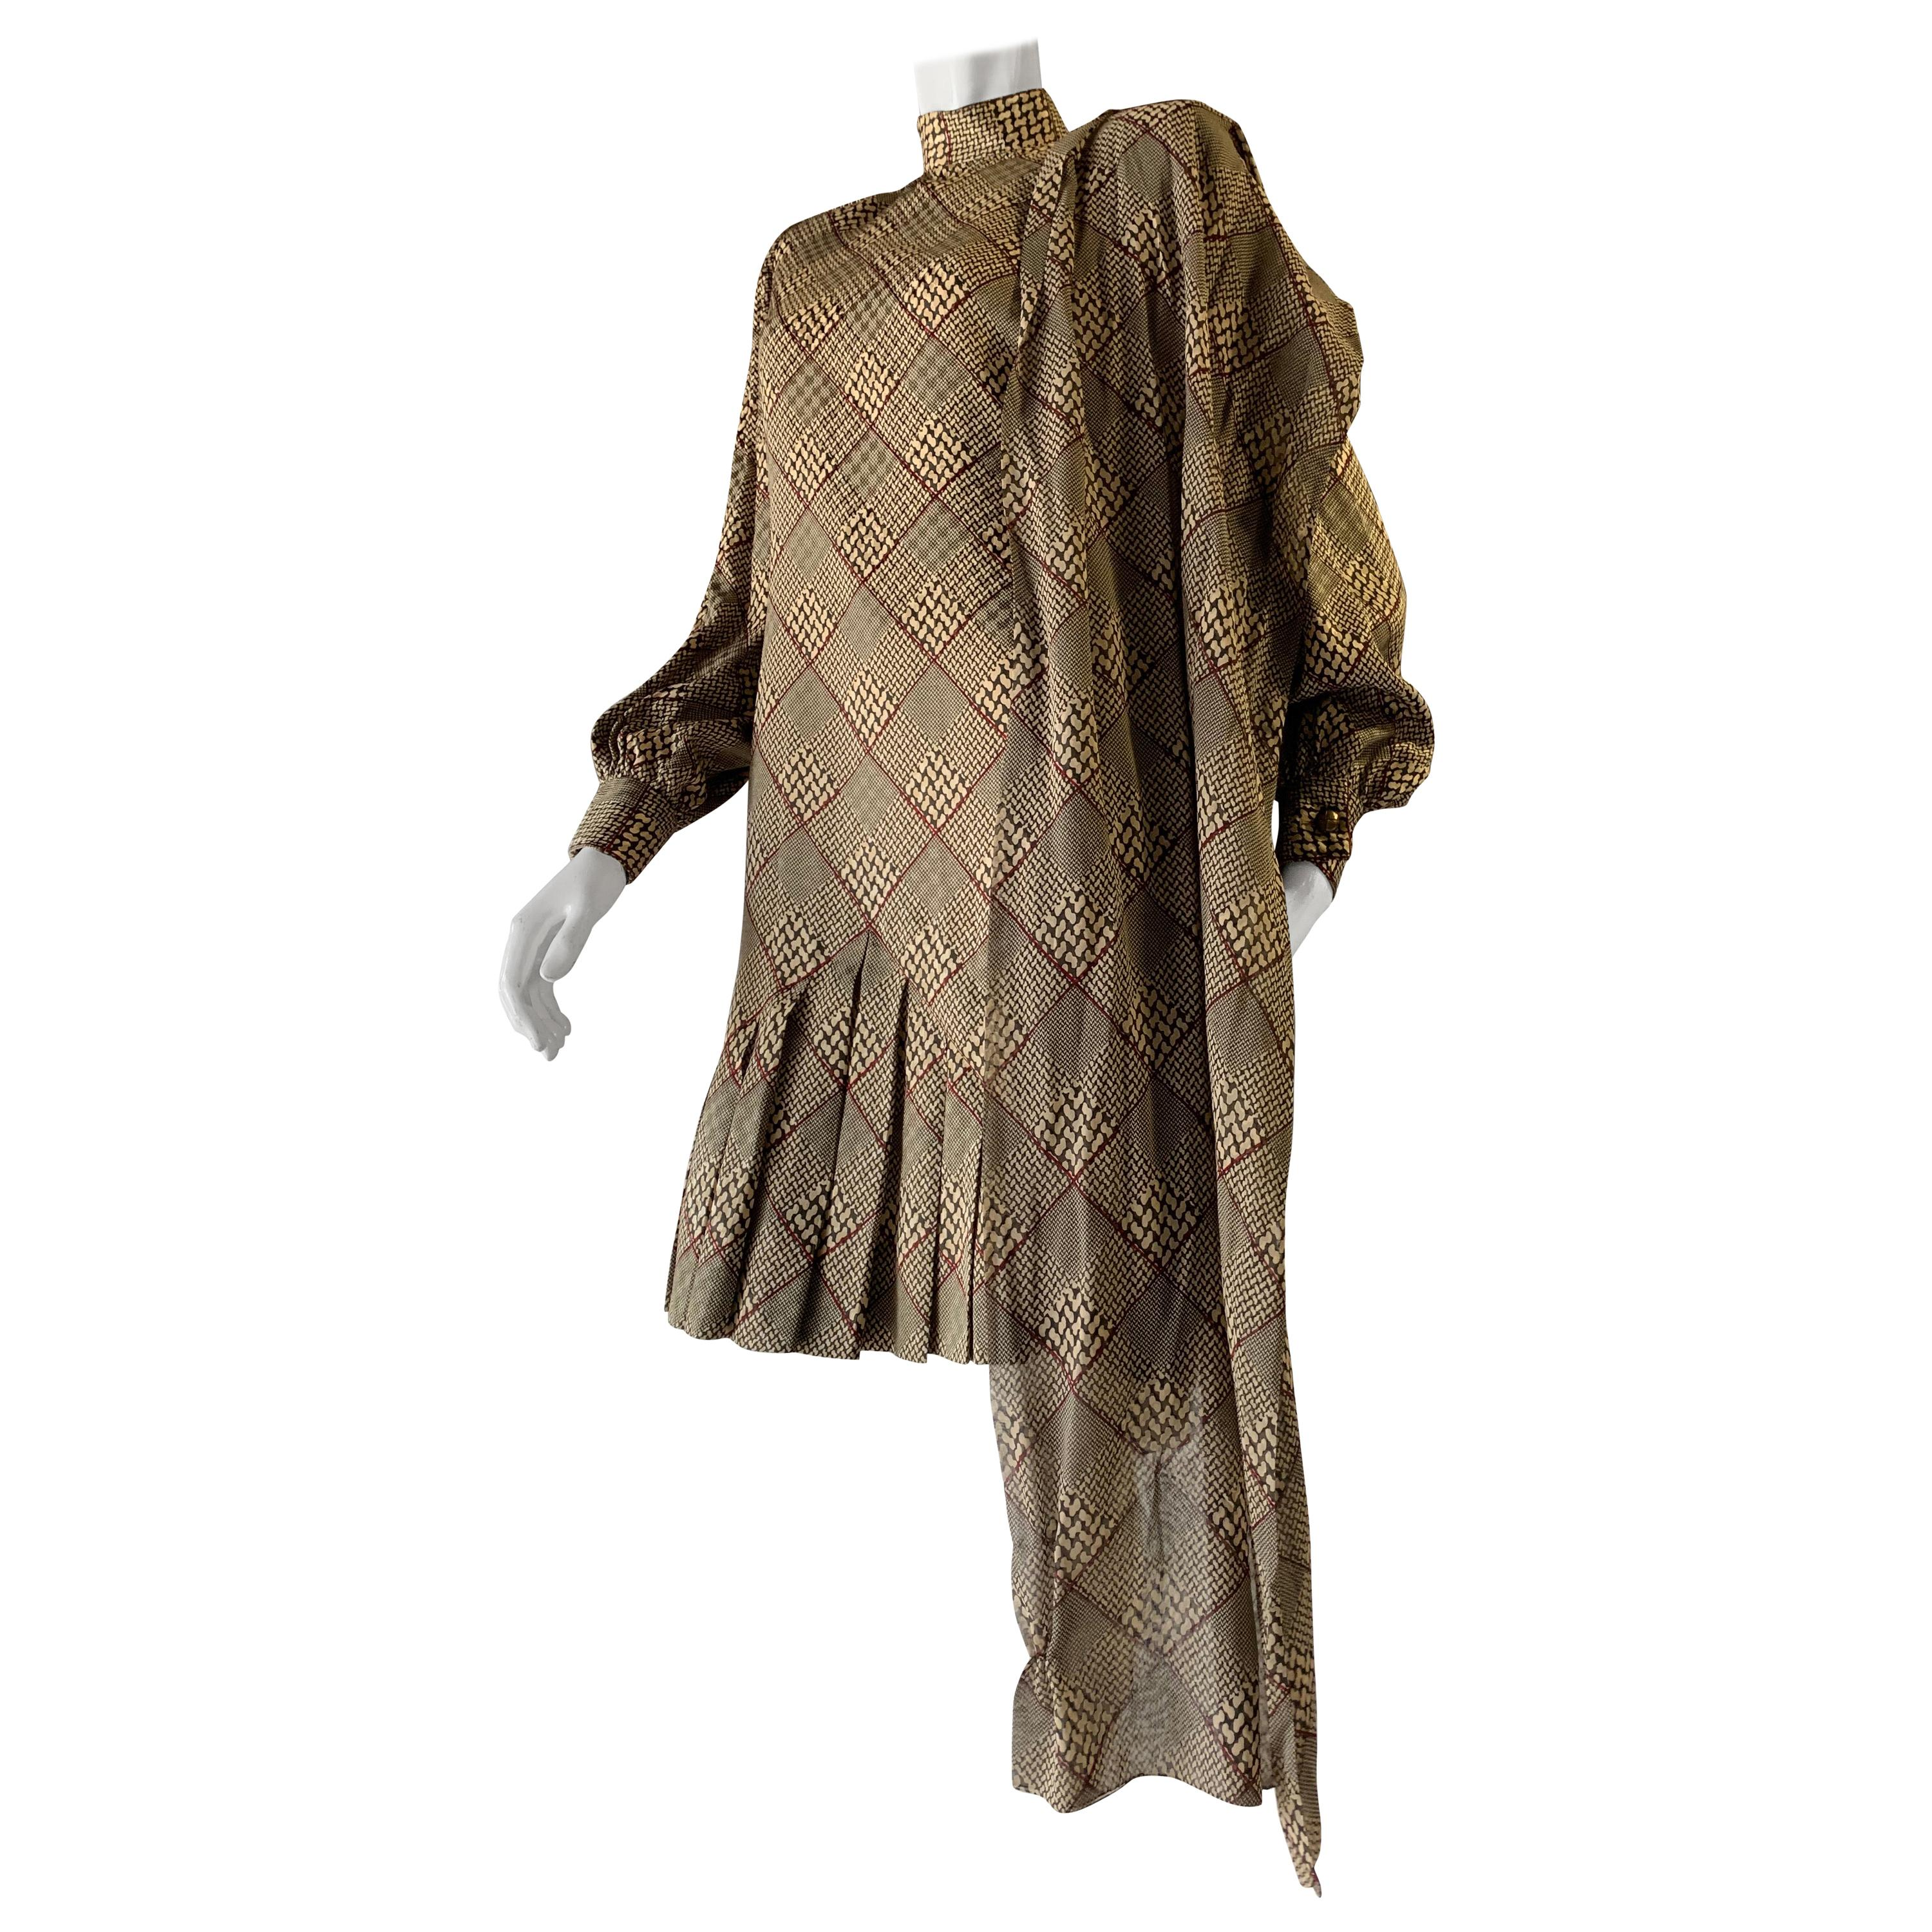 1980s Galanos Silk Dress in a Hounds Tooth Plaid W/ Matching Wool Jacket & Scarf